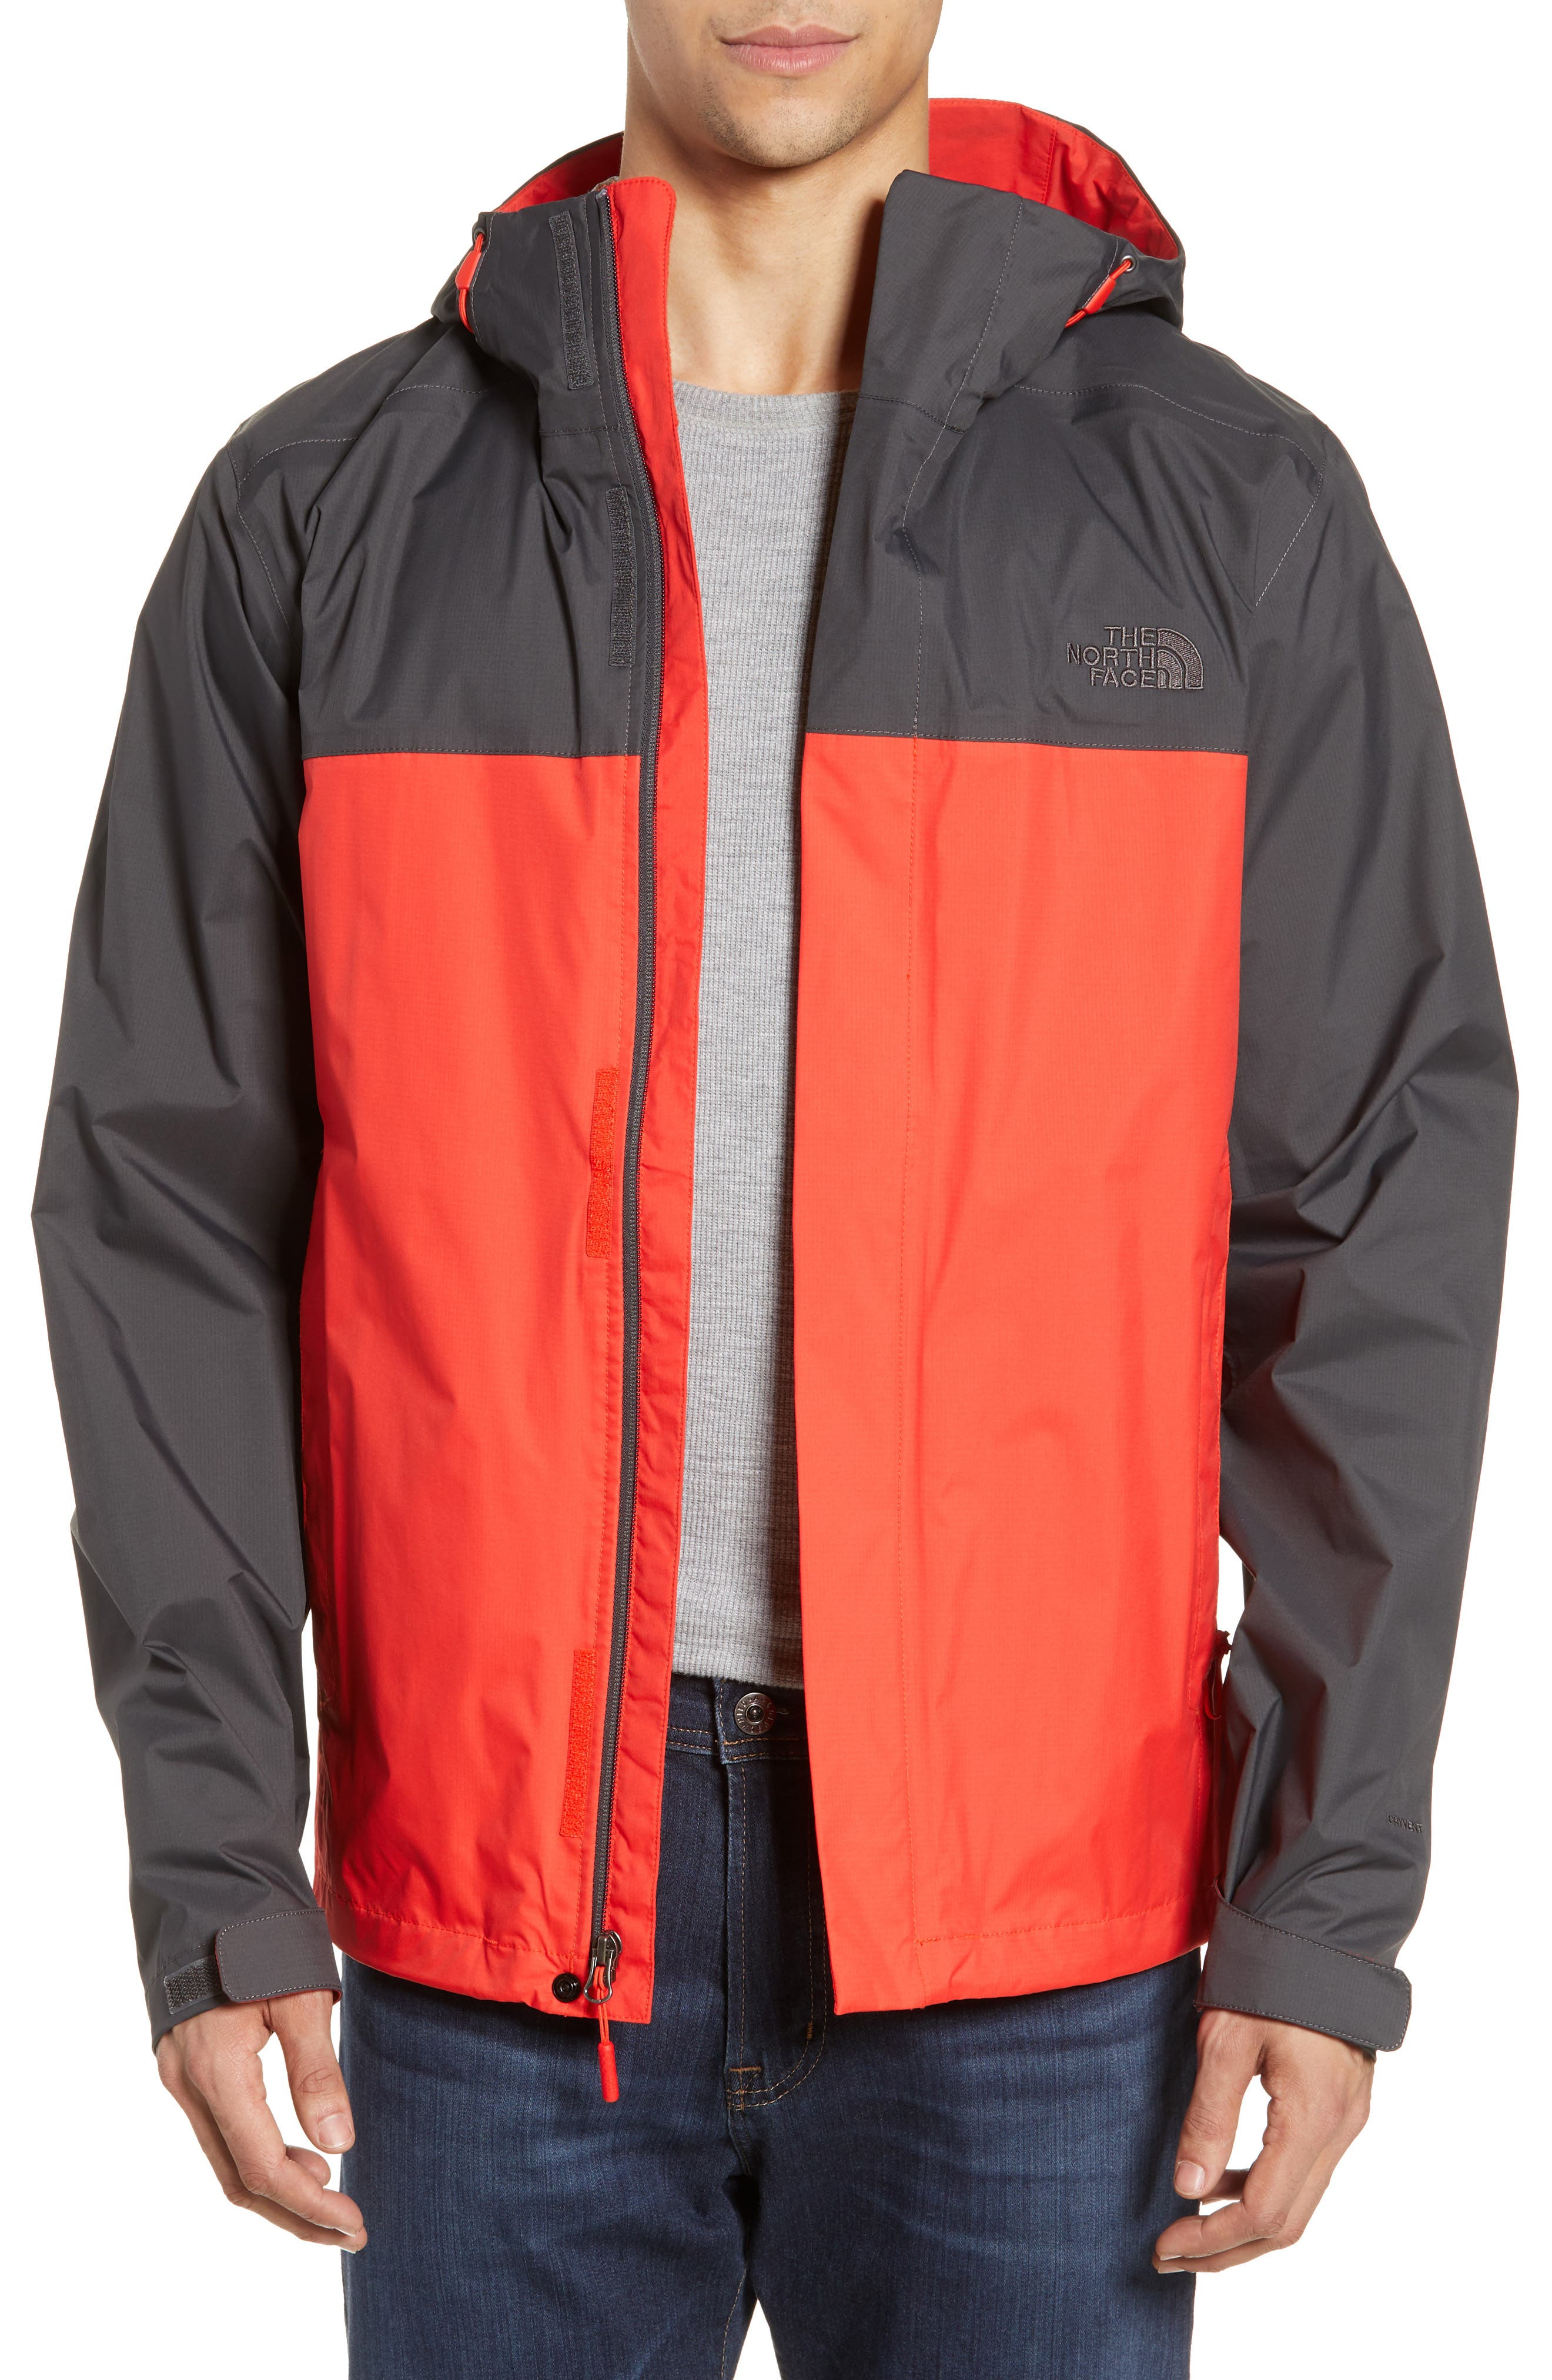 THE NORTH FACE Venture II Raincoat, Main, color, FIERY RED/ ASPHALT GREY